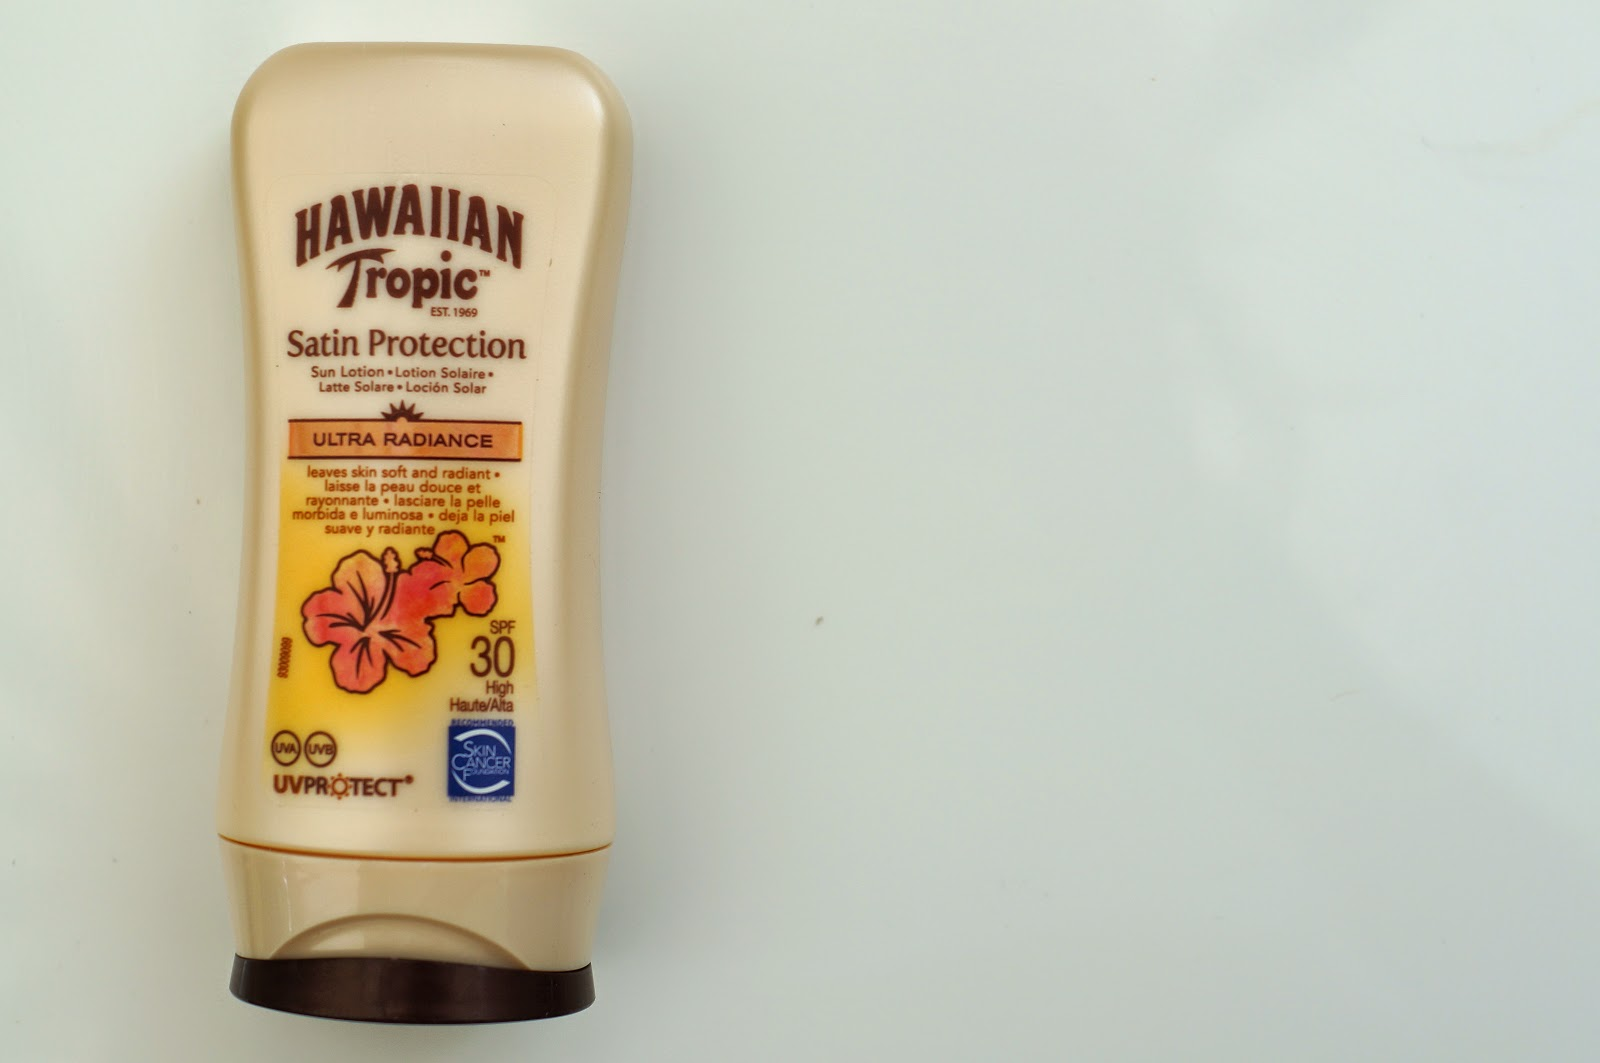 Hawaiian Tropic Satin Protection Ultra Radiance Sun Lotion SPF 30